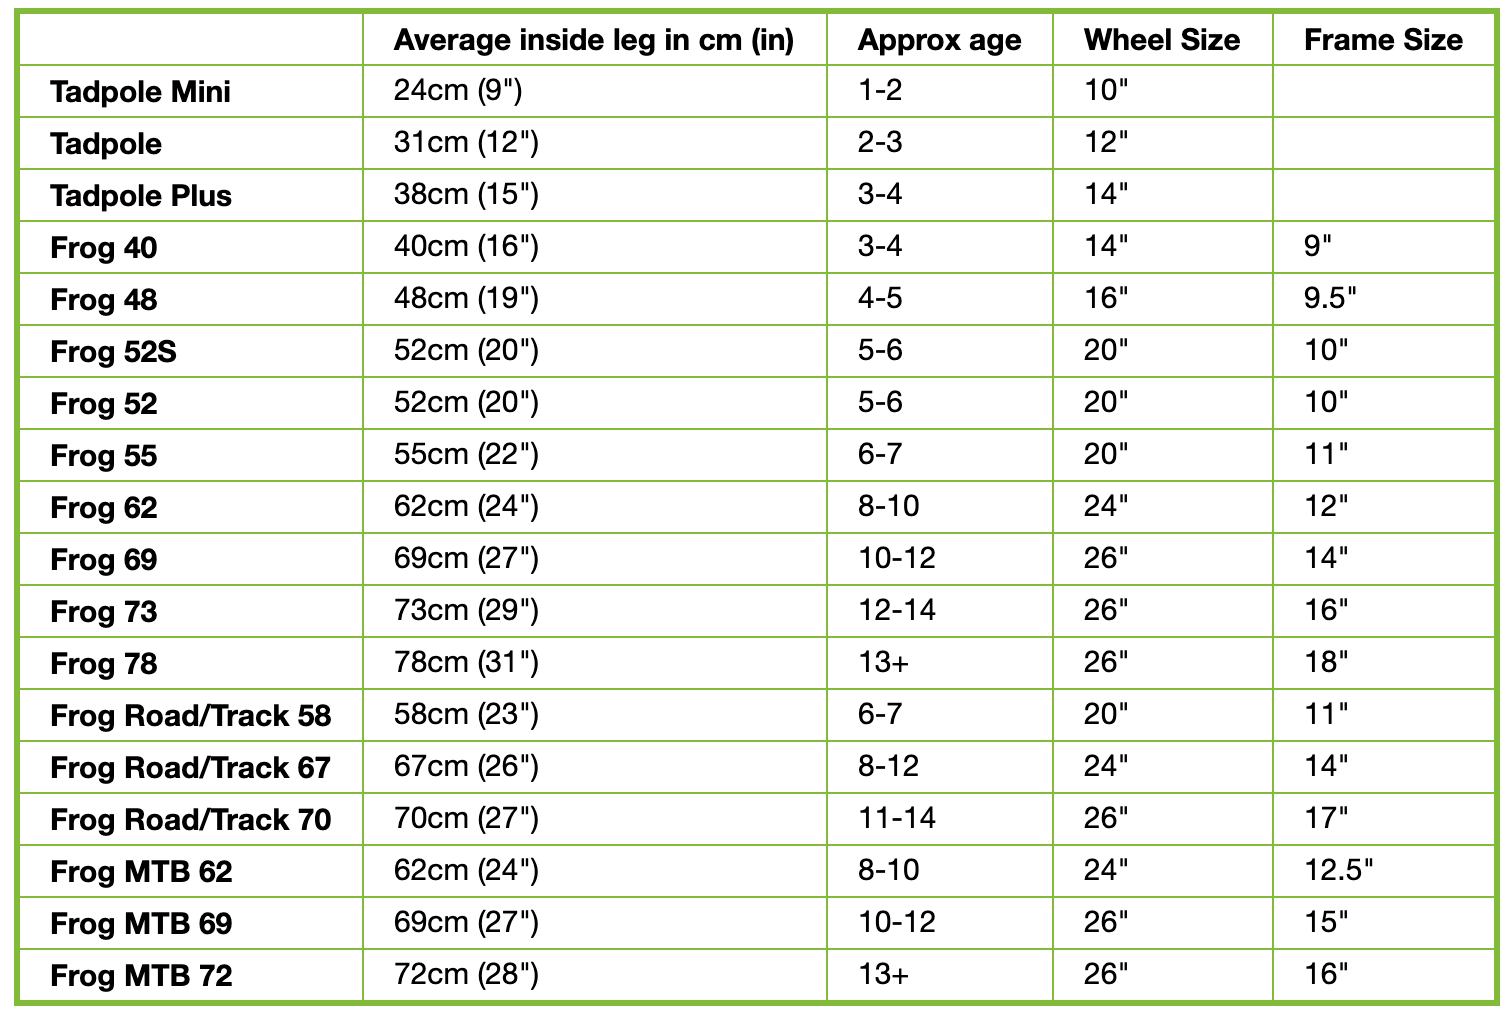 The Frog Kids Bike Sizing Guide